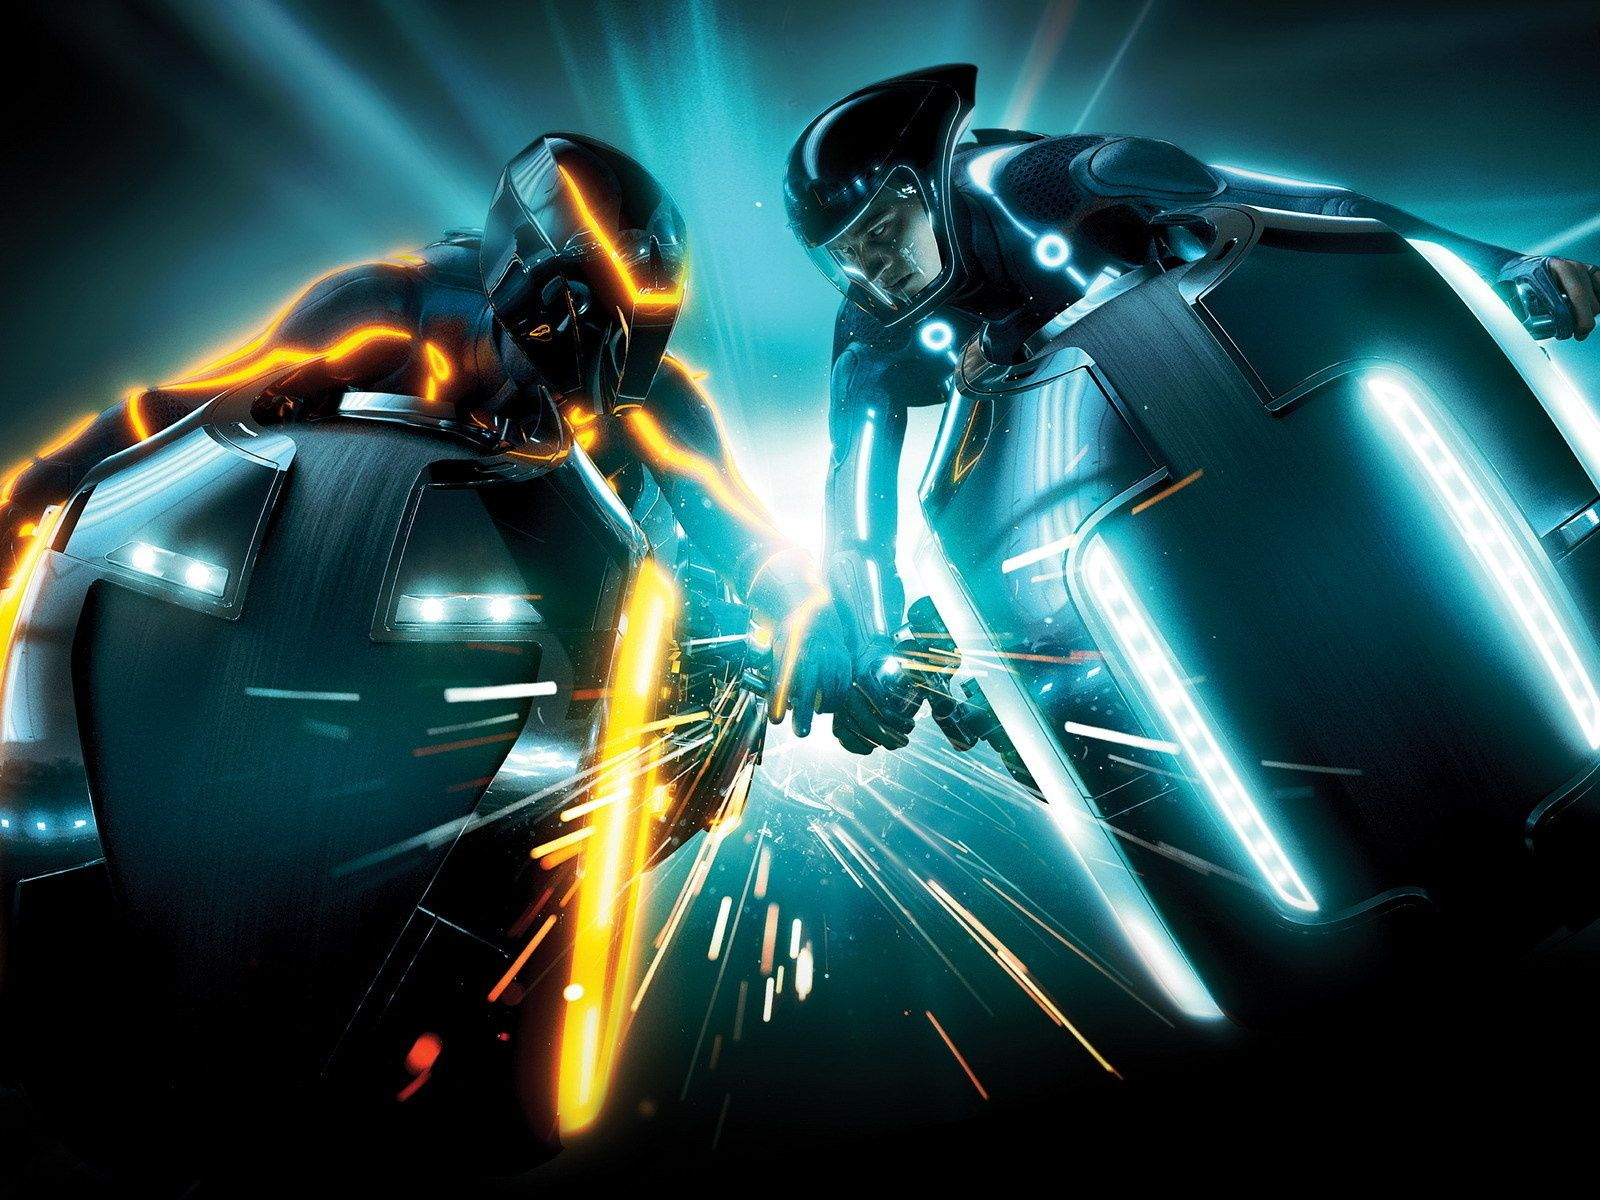 tron wallpaper hd style - photo #43